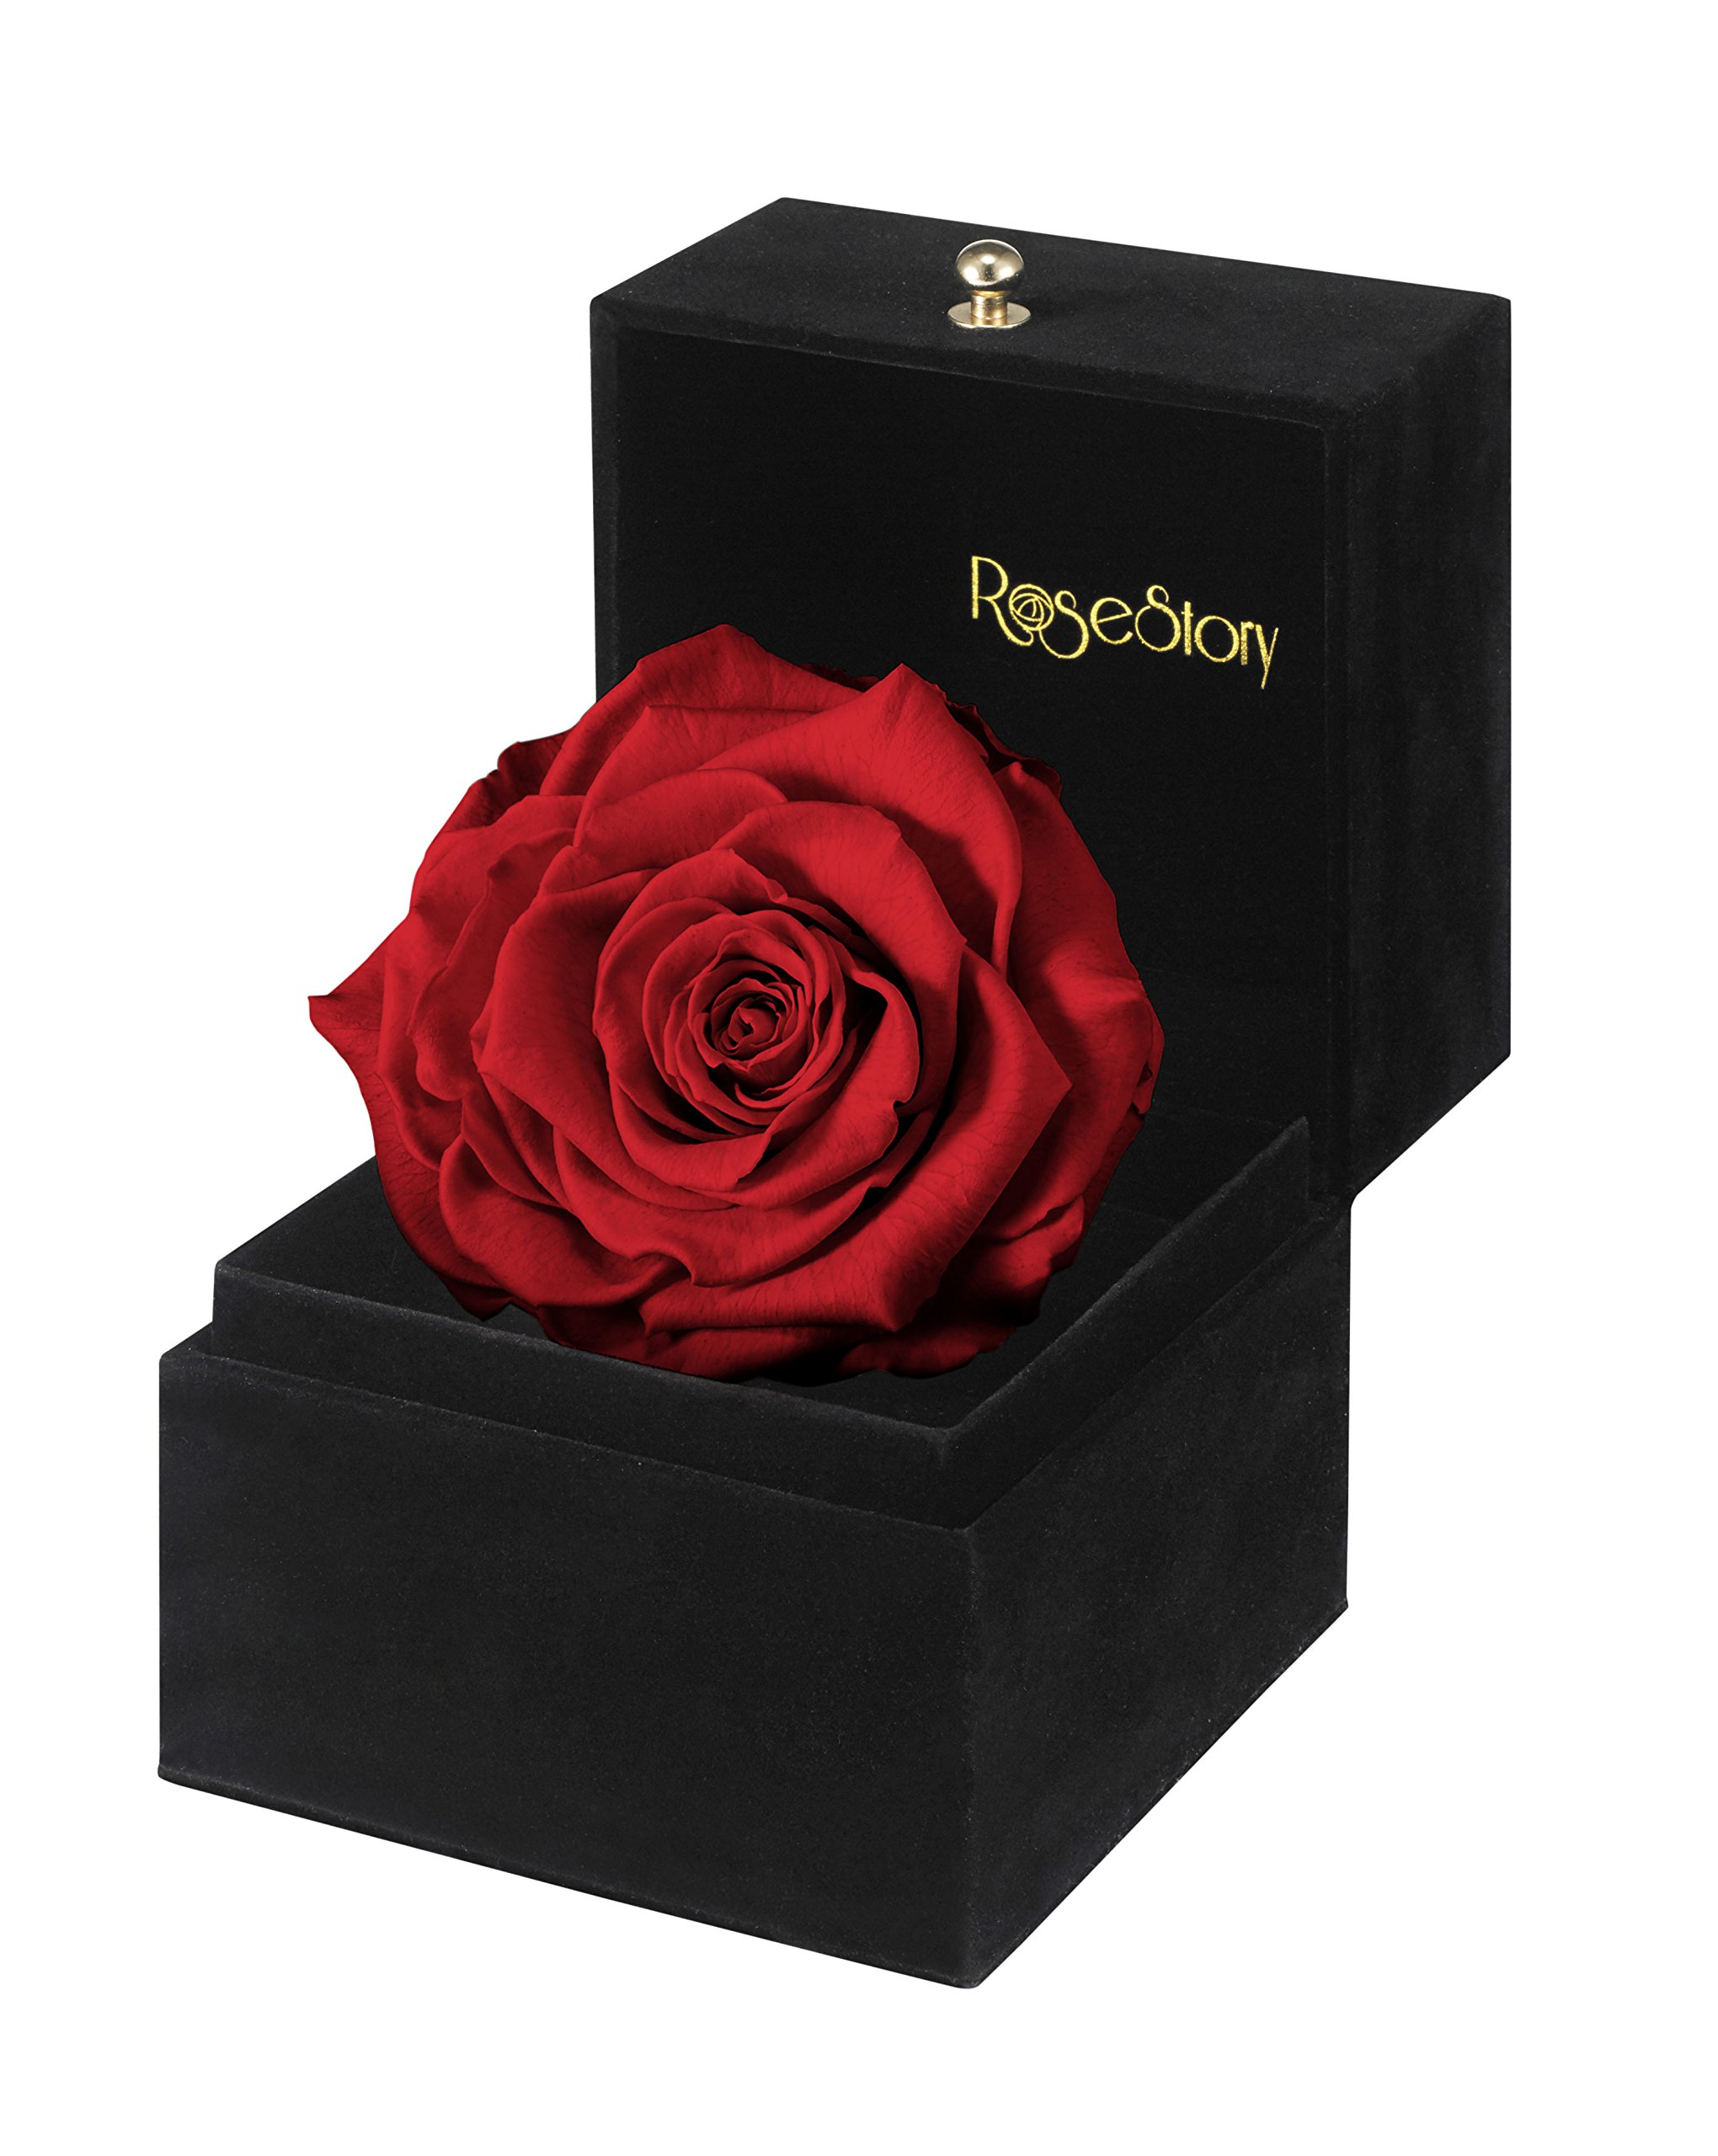 RoseStory|4'' Red Rose Gift Box-Valentine's Day Gift, Anniversary Gift, Birthday Gift, Unique gift Idea for Her by Rose Story